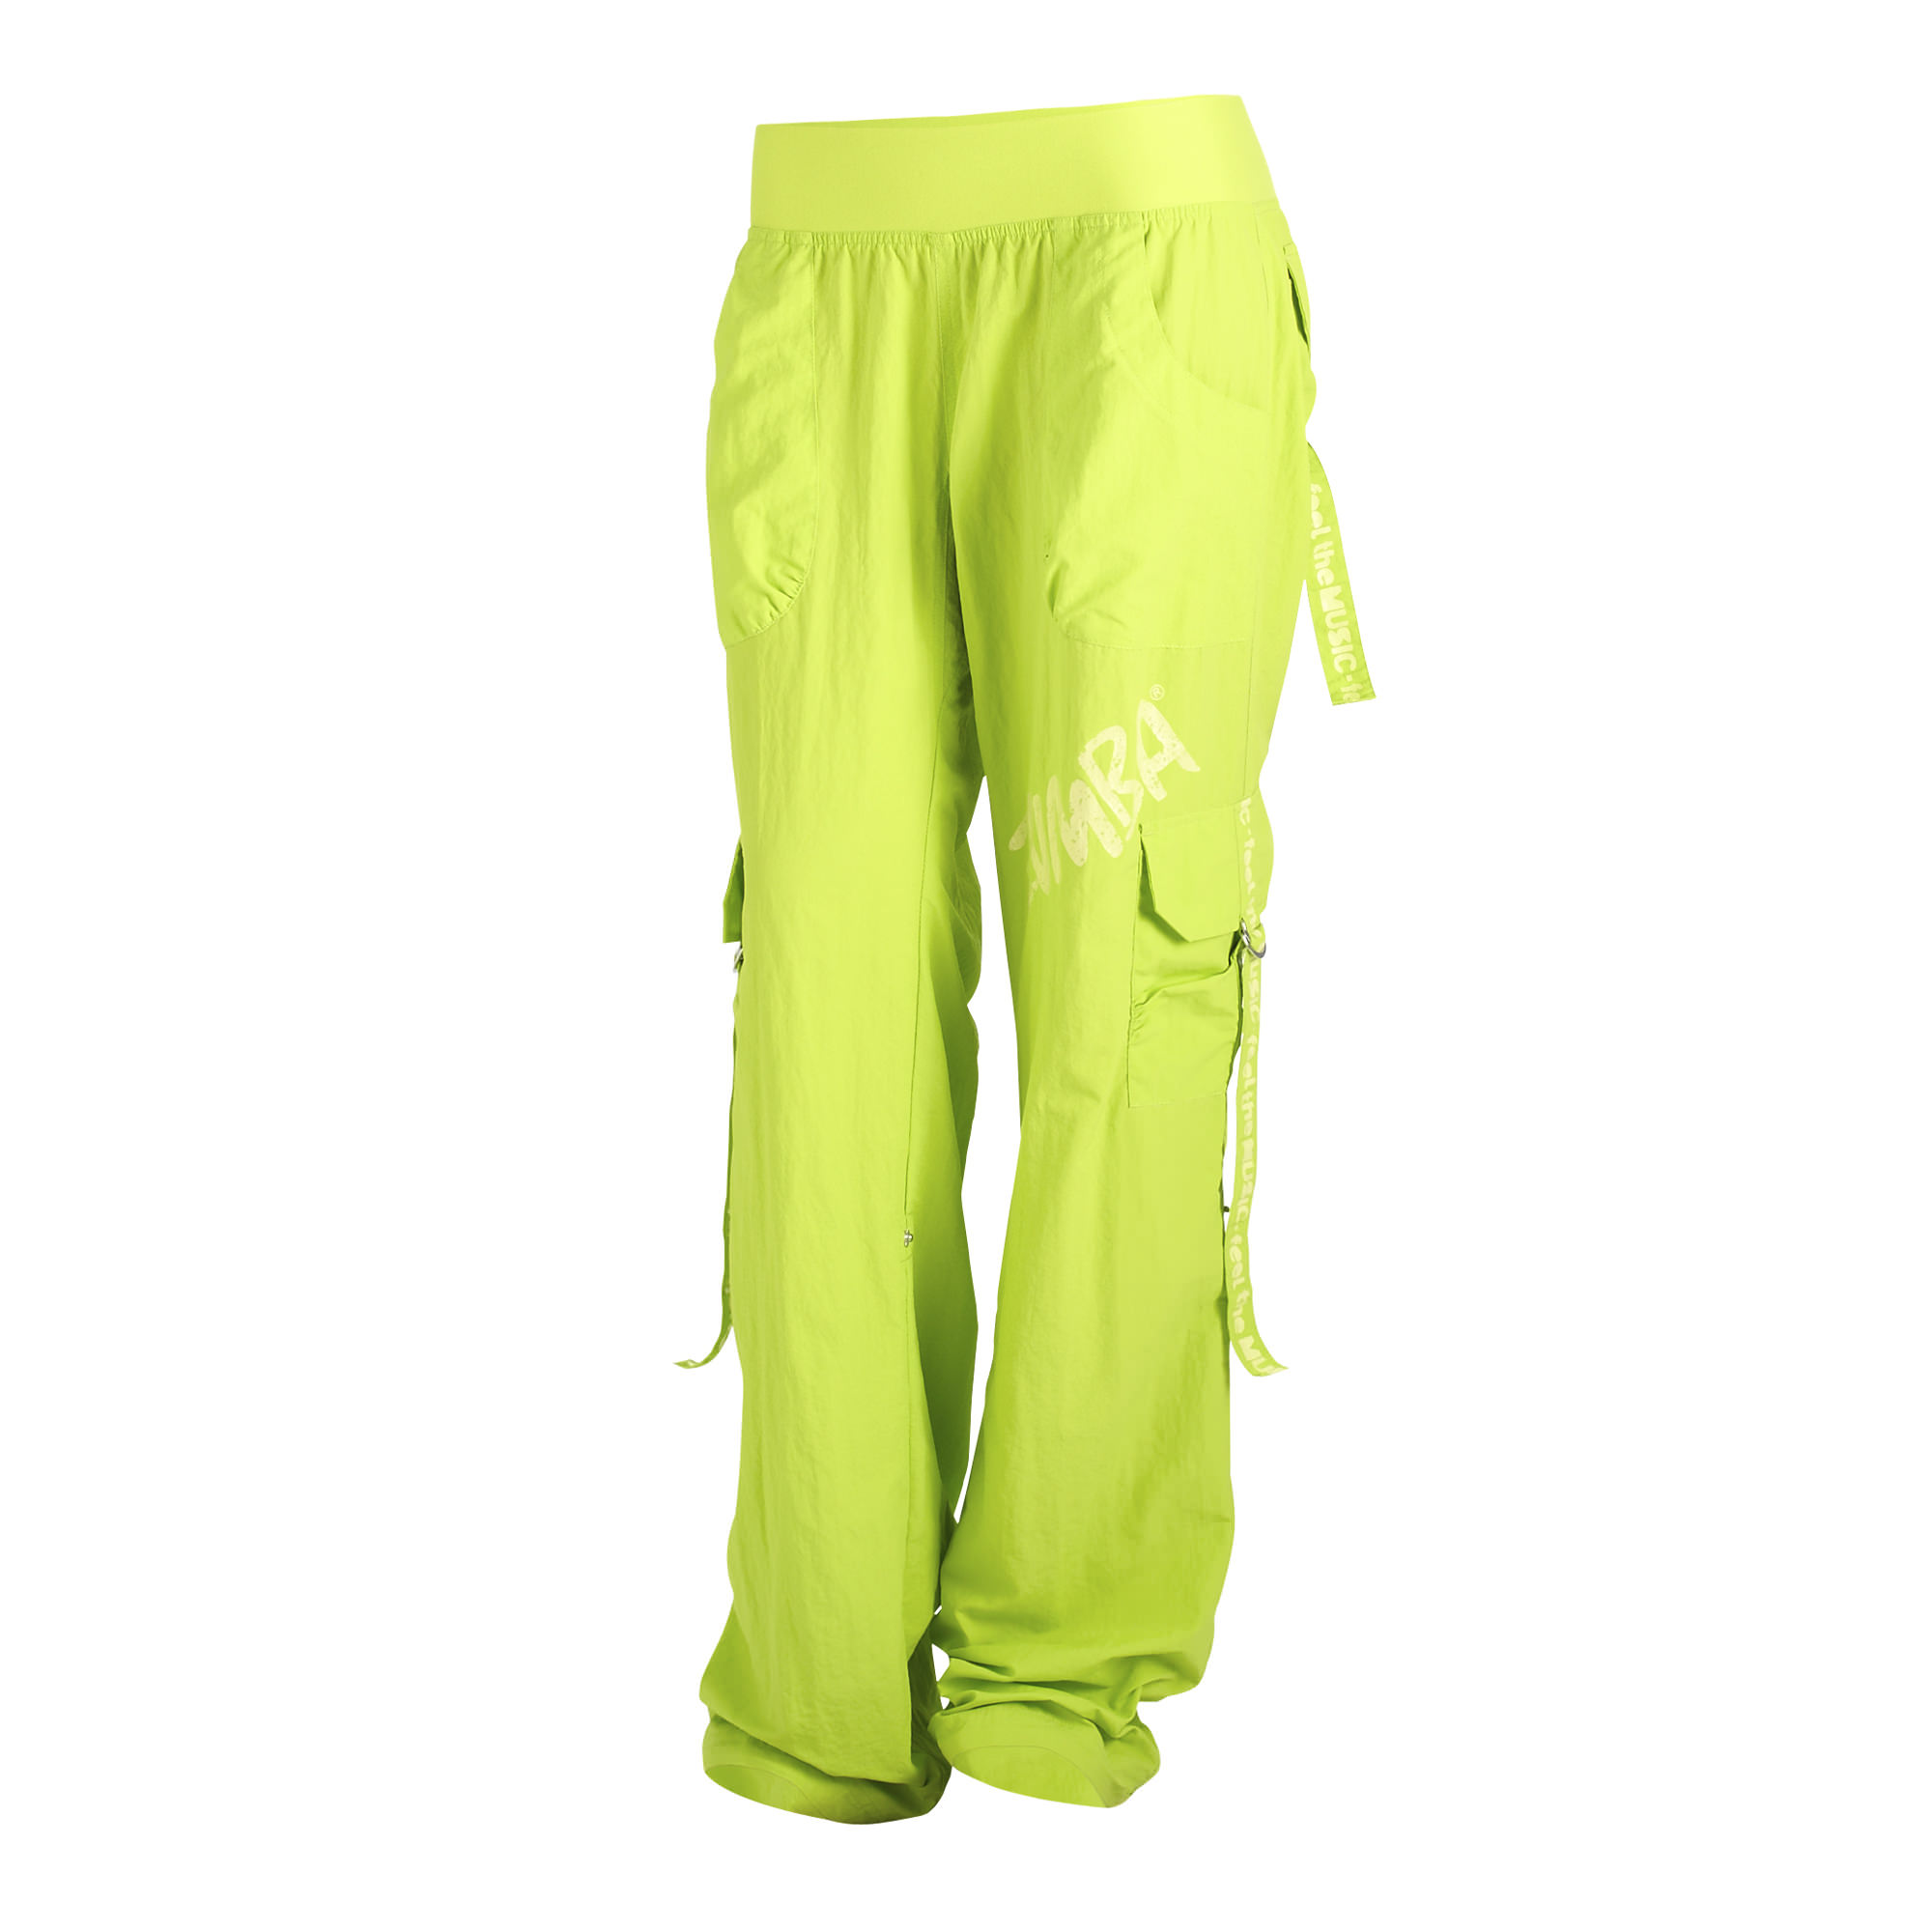 Get the best deals on zumba cargo pants and save up to 70% off at Poshmark now! Whatever you're shopping for, we've got it.